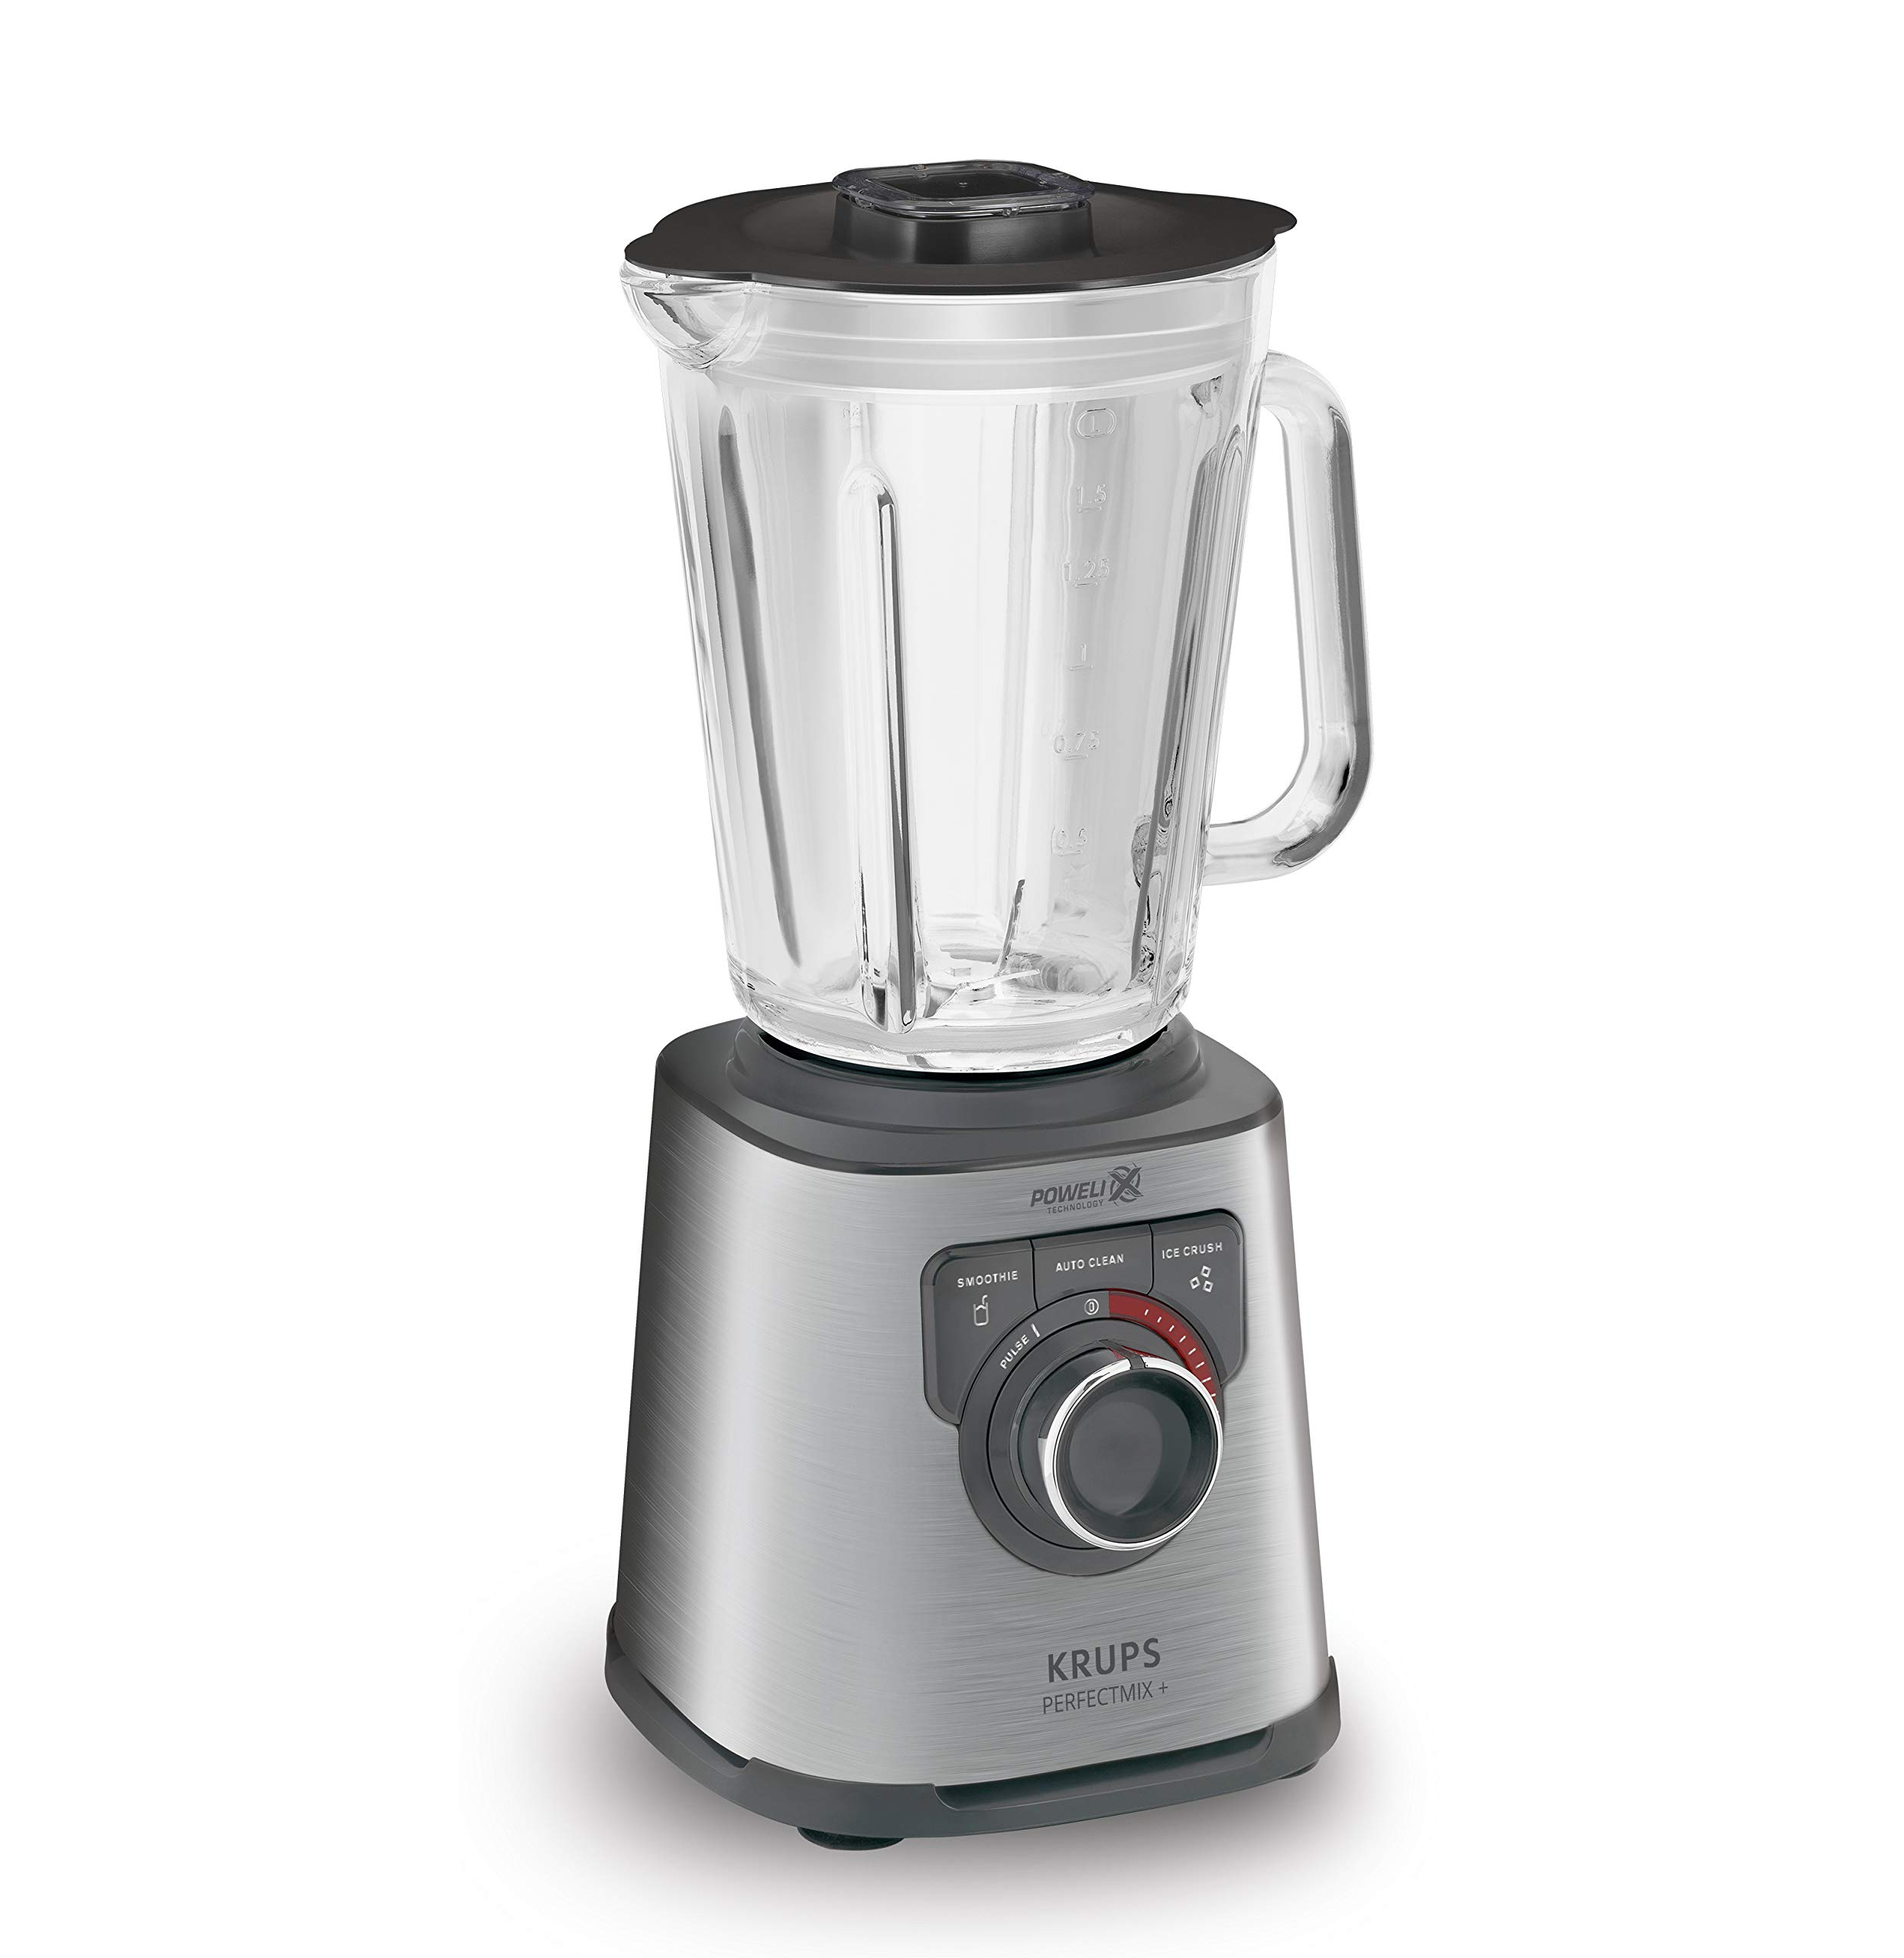 Krups-Perfect-Mix-Highspeed-Standmixer